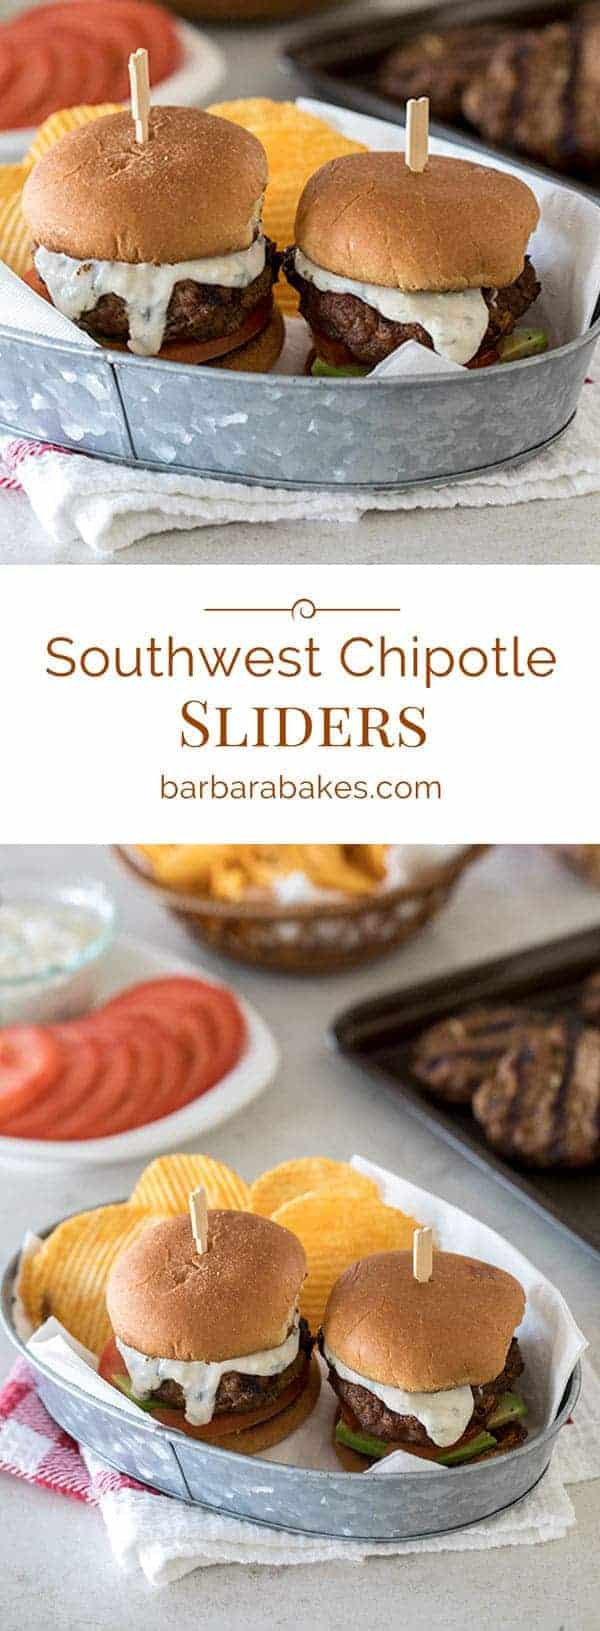 These Southwest Chipotle Burger Sliders are a perfect combo. A not too spicy, juicy little burger is topped with a creamy chili lime cilantro queso fresco sauce, avocado and tomatoes all on a toasted bun. They're perfect for the big game!